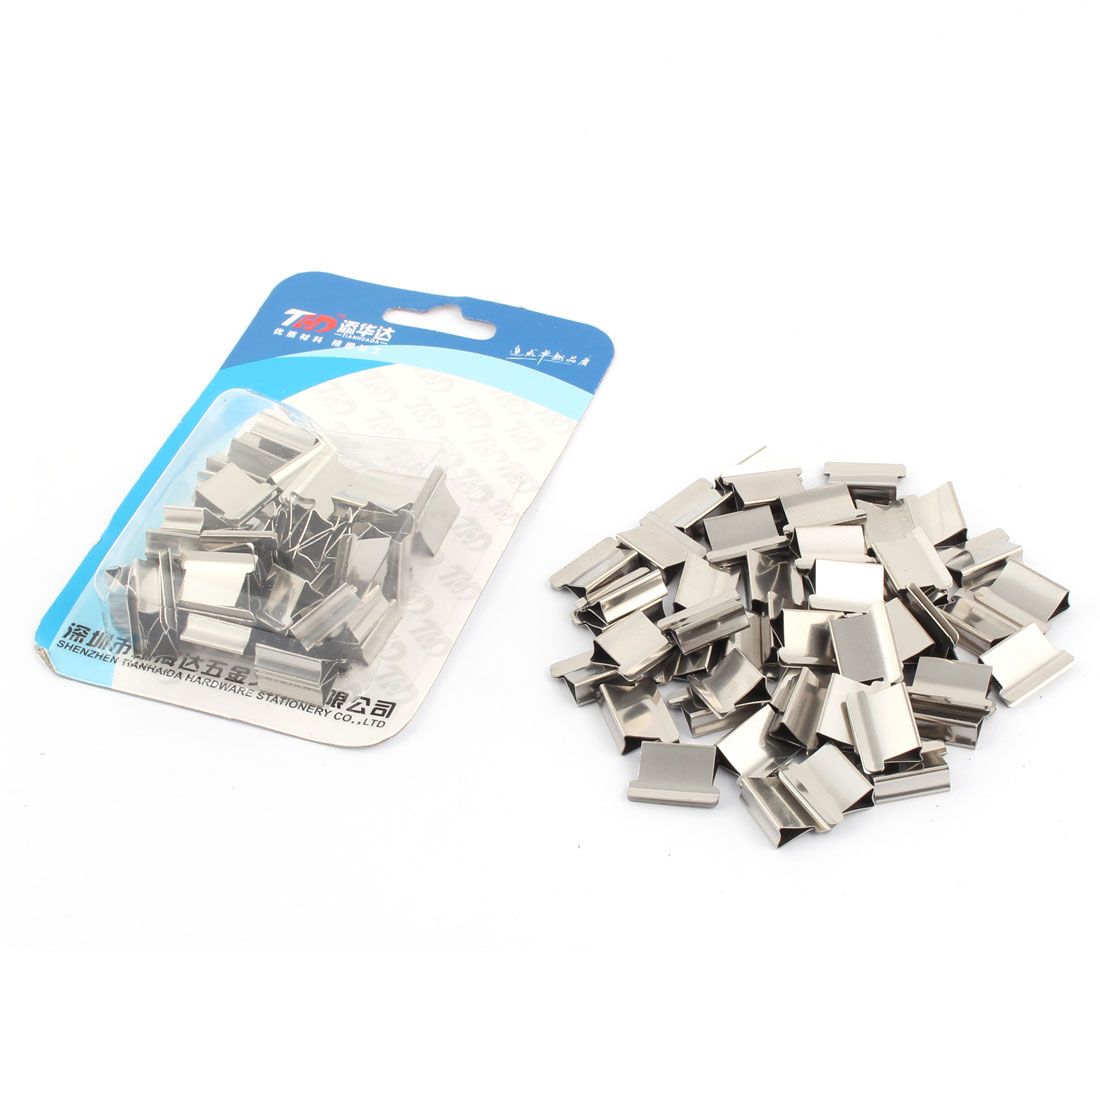 Metal Paper Fastener Clam Staple Dispenser Clips Silver Tone 100pcs